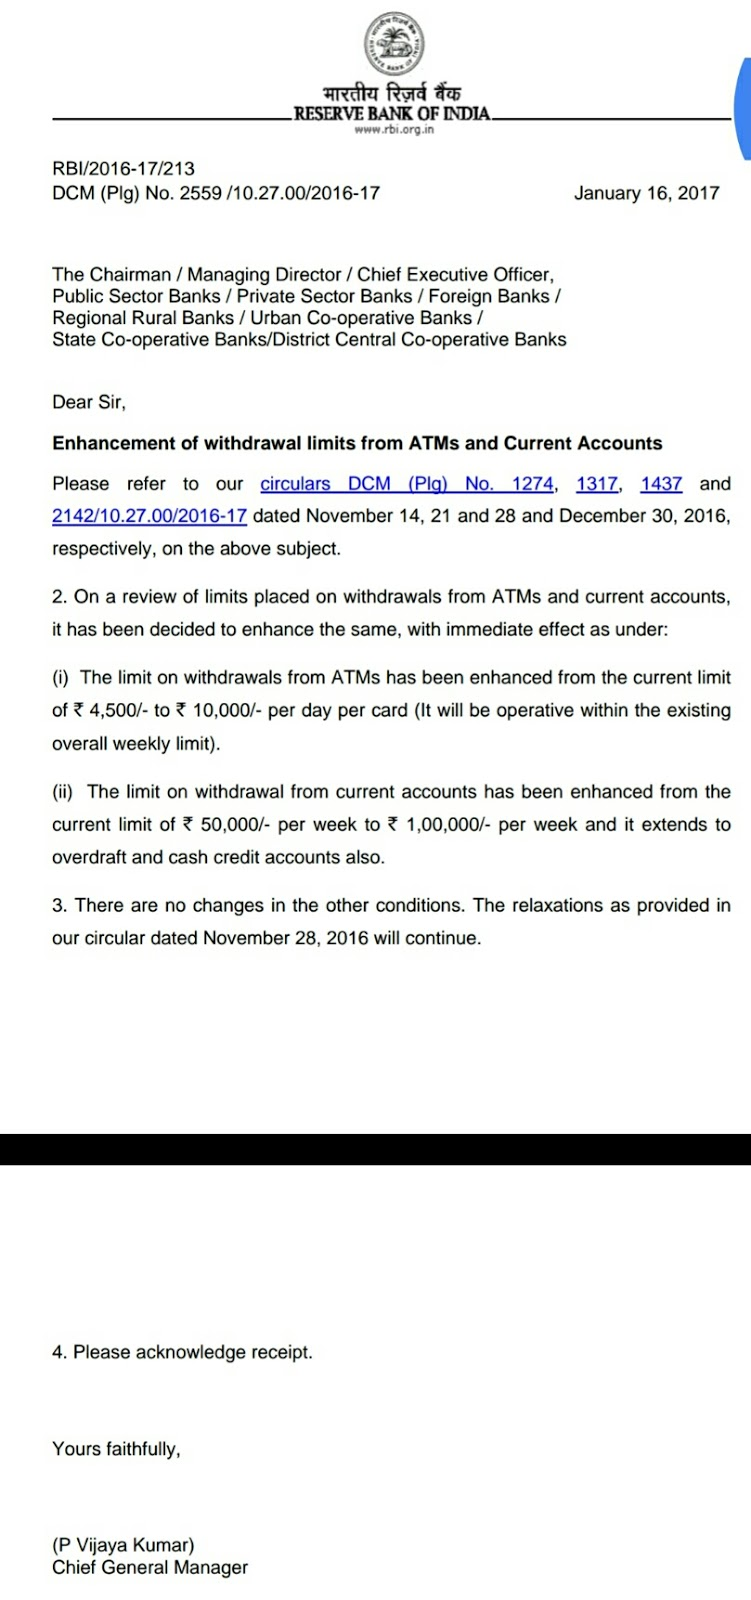 RBI has Increased withdrawal limits from ATMs and and for Current Accounts from 16th Jan 2017